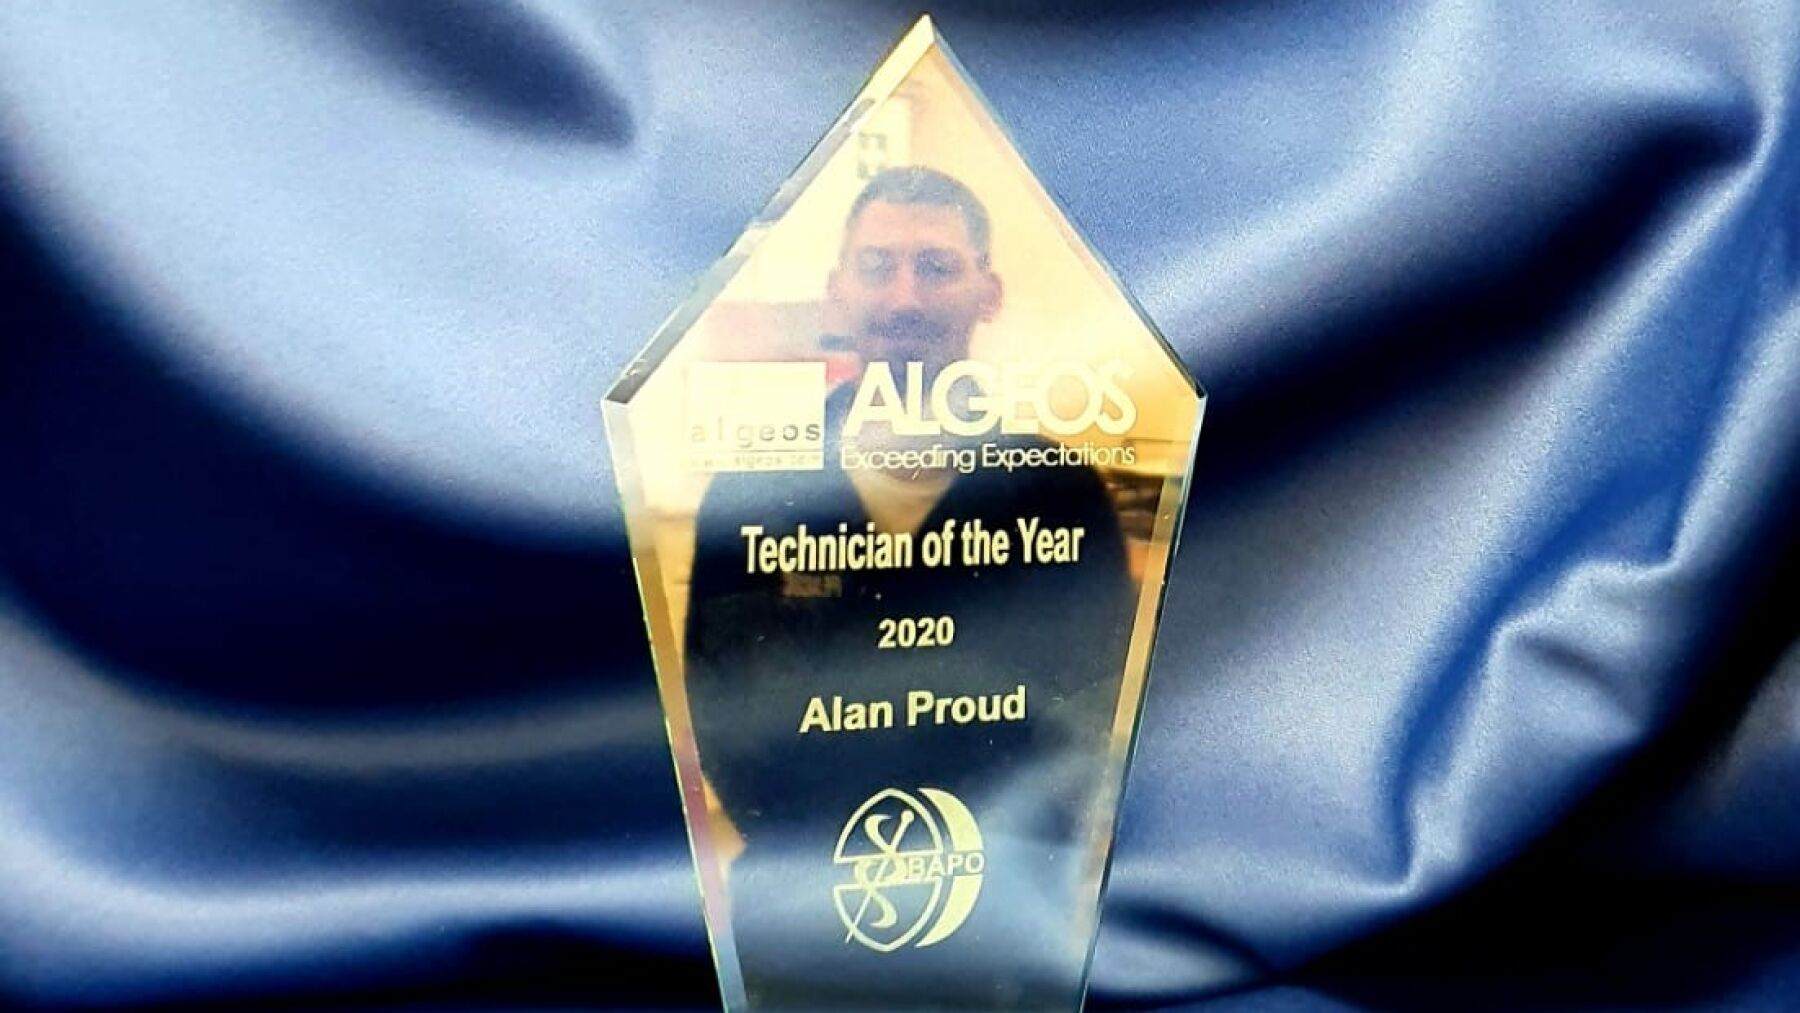 Alan's reflection in his award